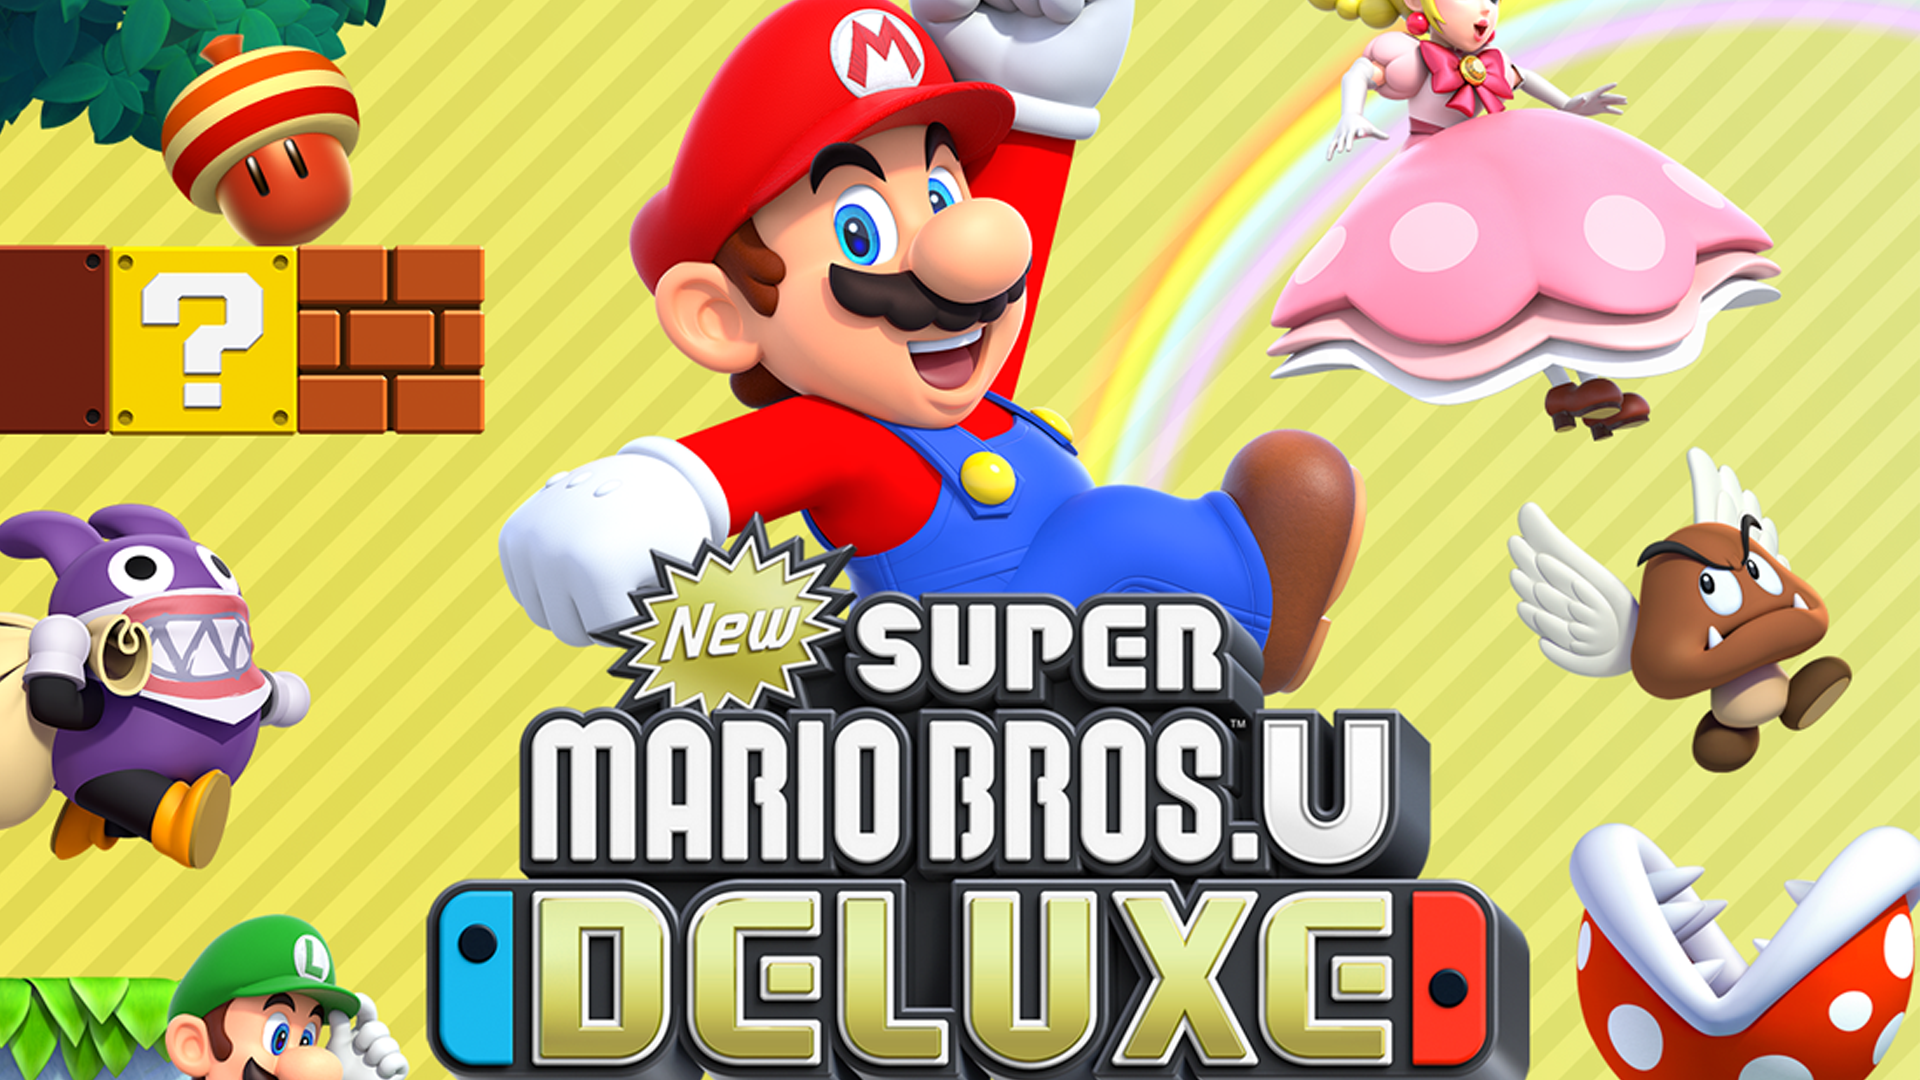 New Super Mario Bros U Deluxe Coming to a Switch Near You 1920x1080